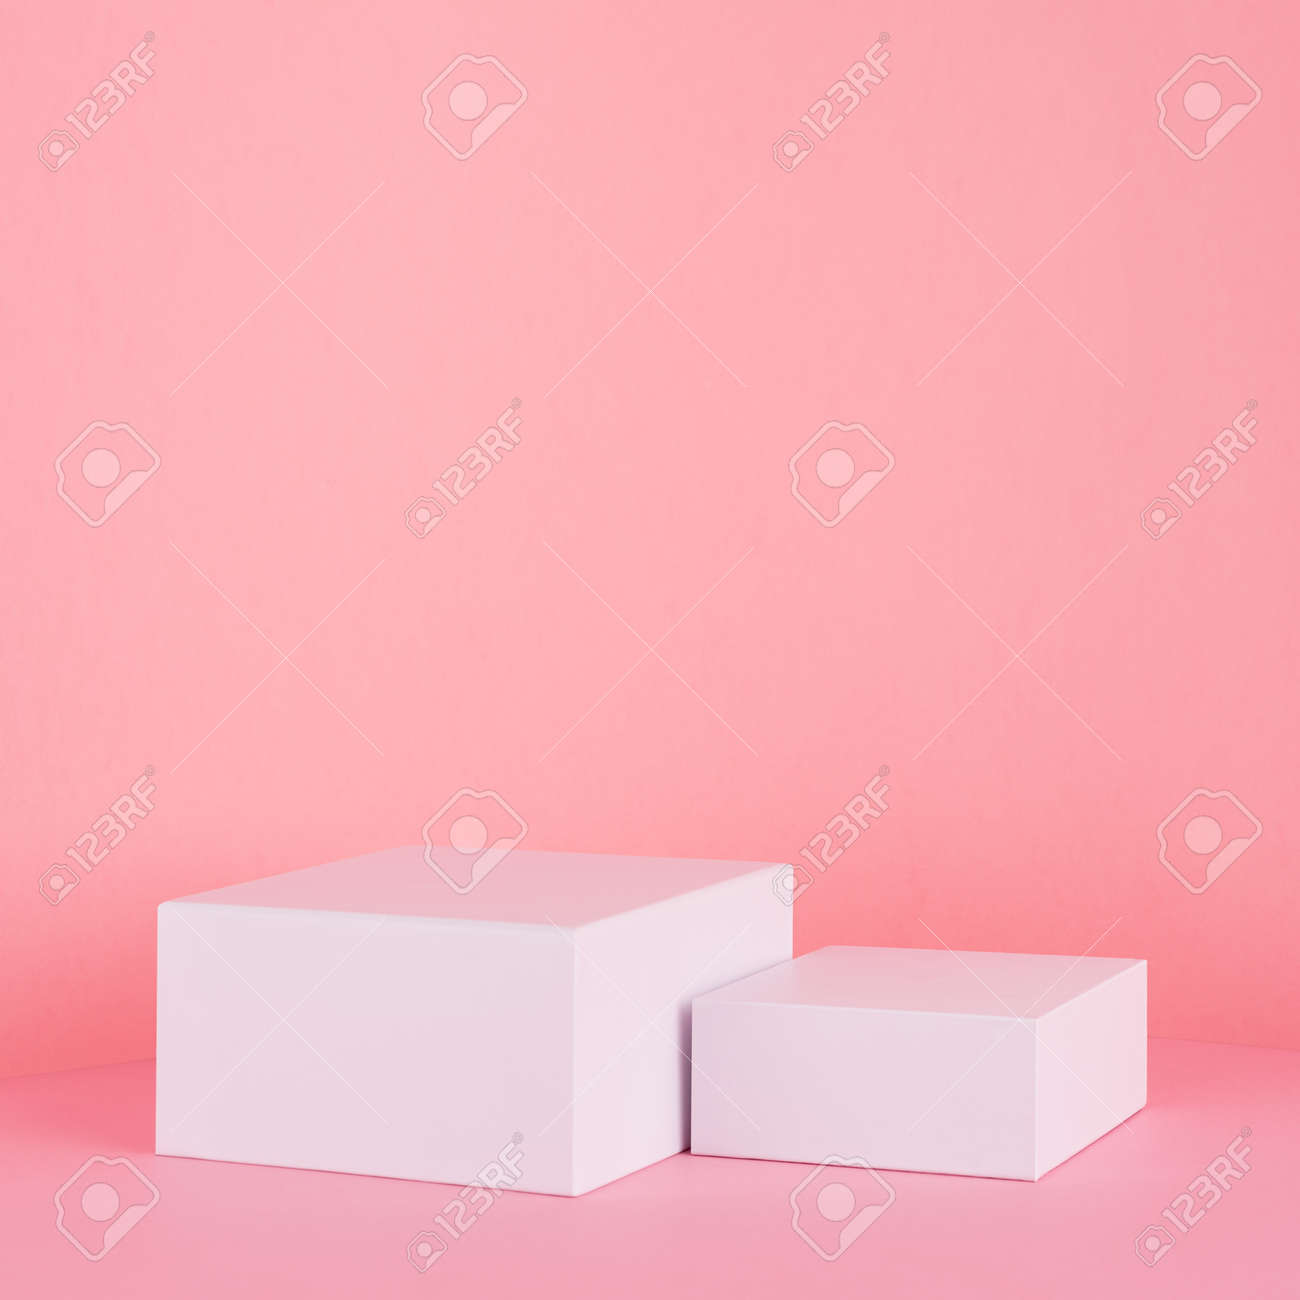 White square podiums for display cosmetic and goods on gentle pastel pink spring background, modern fashion style. - 168468854